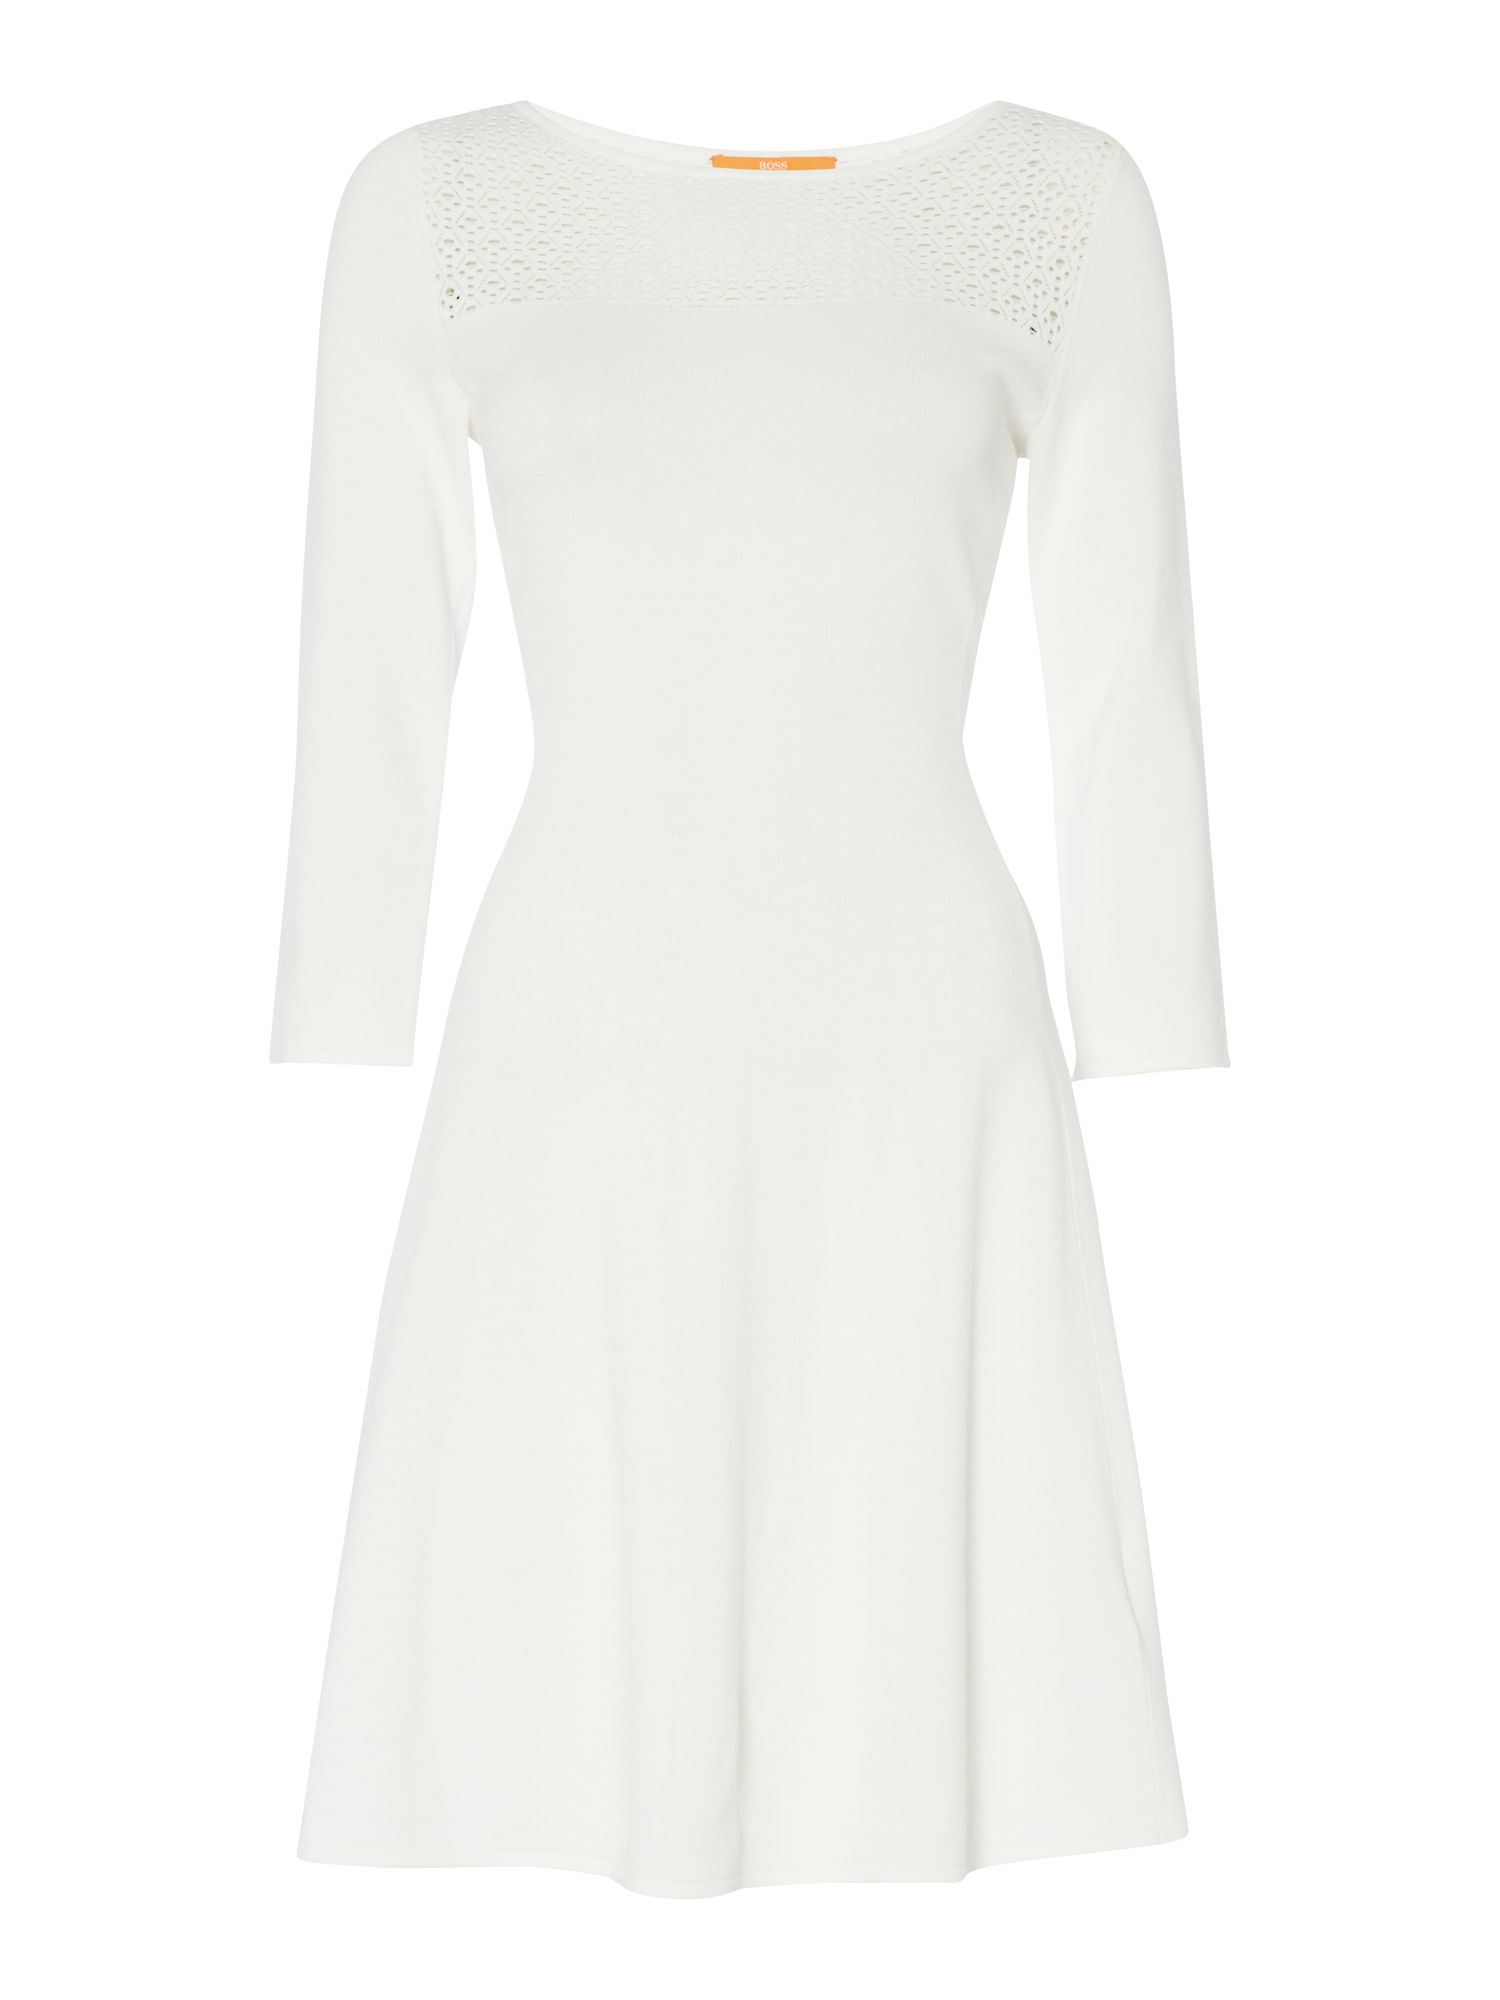 Hugo Boss Witalia fit and flare crochet dress, White